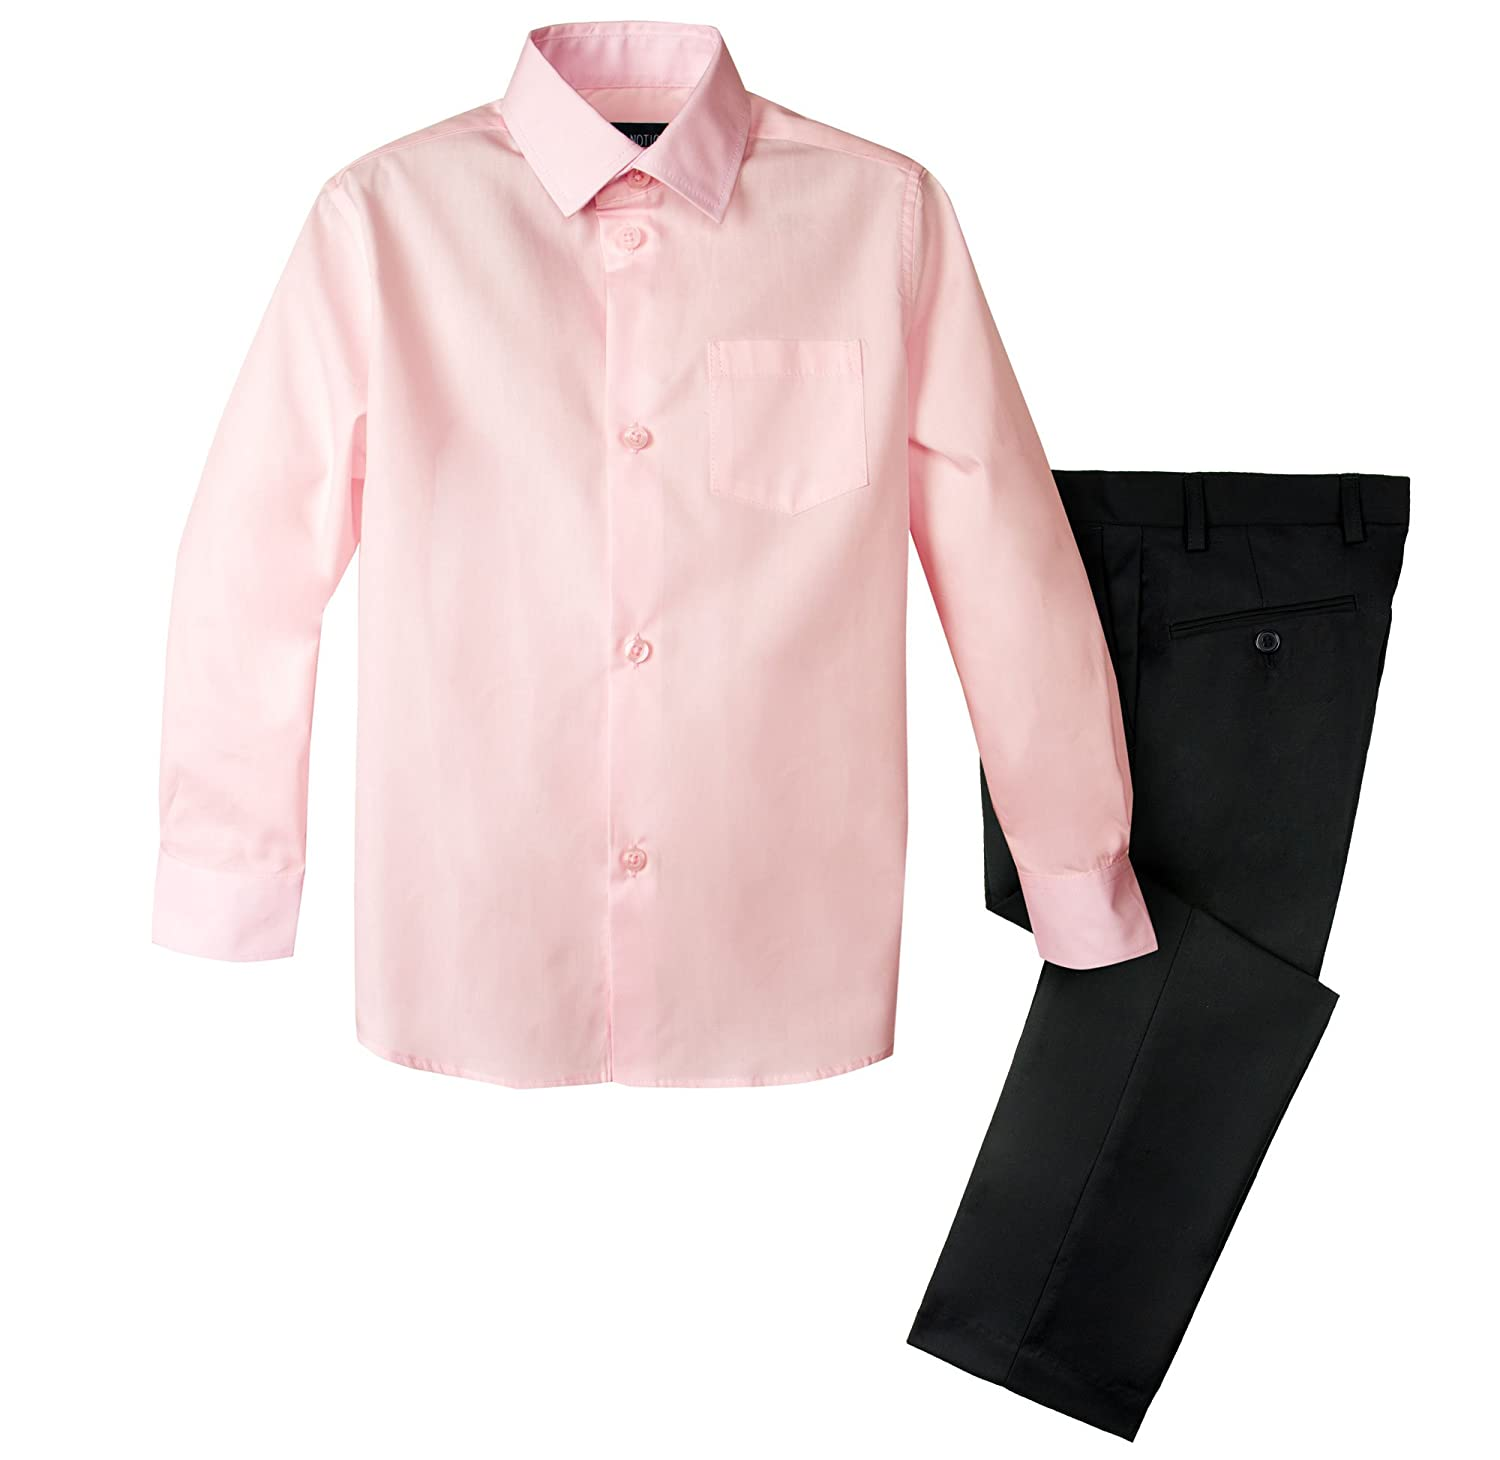 Spring Notion Boys 2-Piece Dress Pants and Shirt Set SN338S2-SNS-338S2